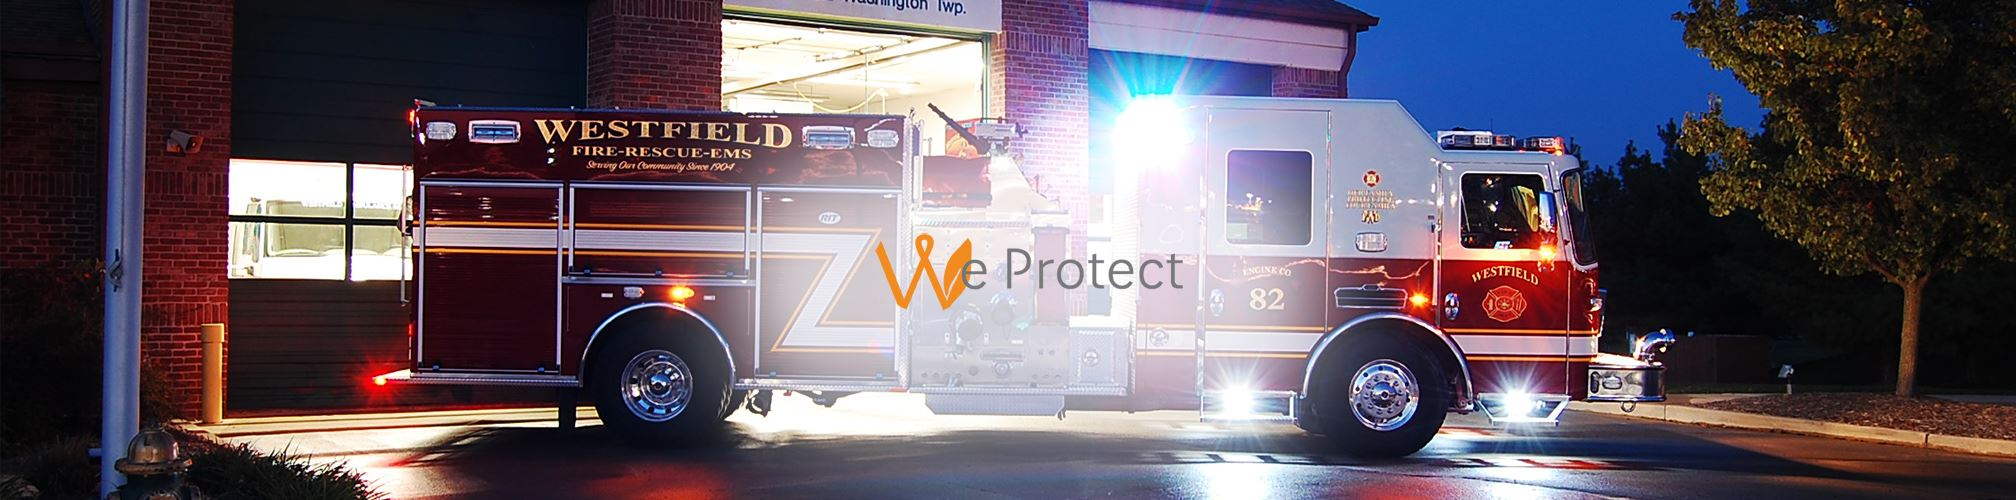 Washington Township, IN | Official Website